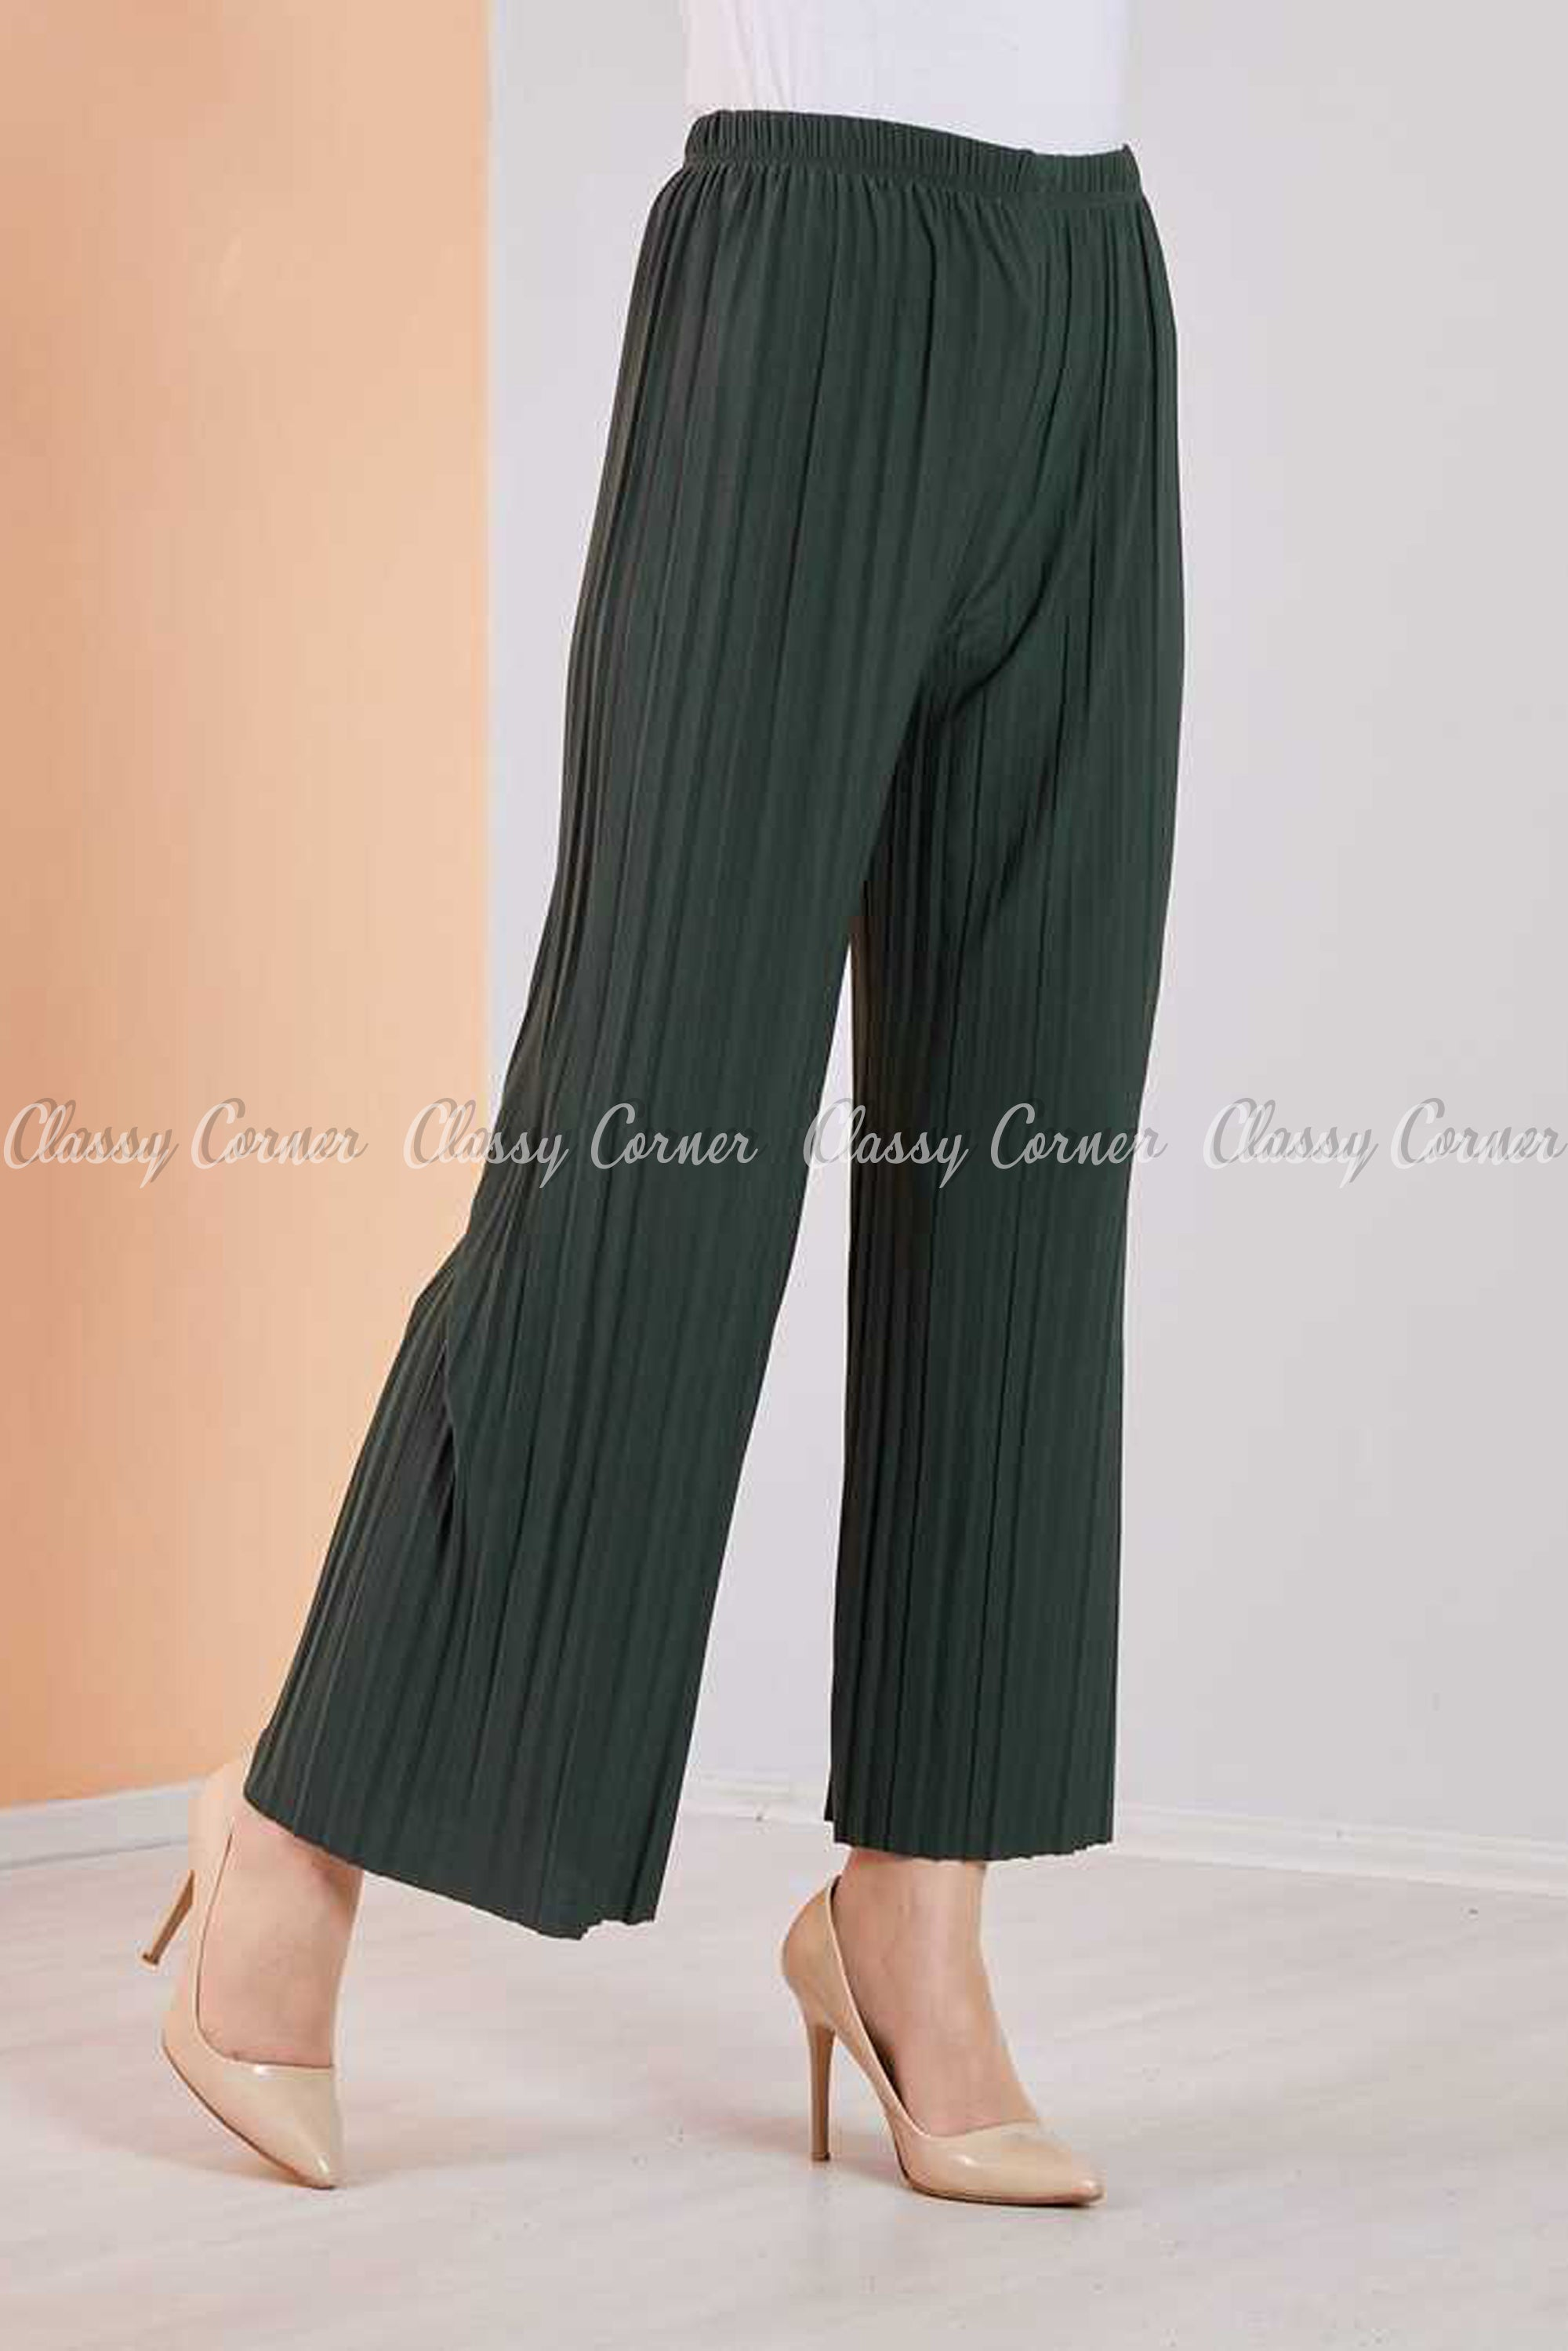 Pleated Green Modest Comfy Pants